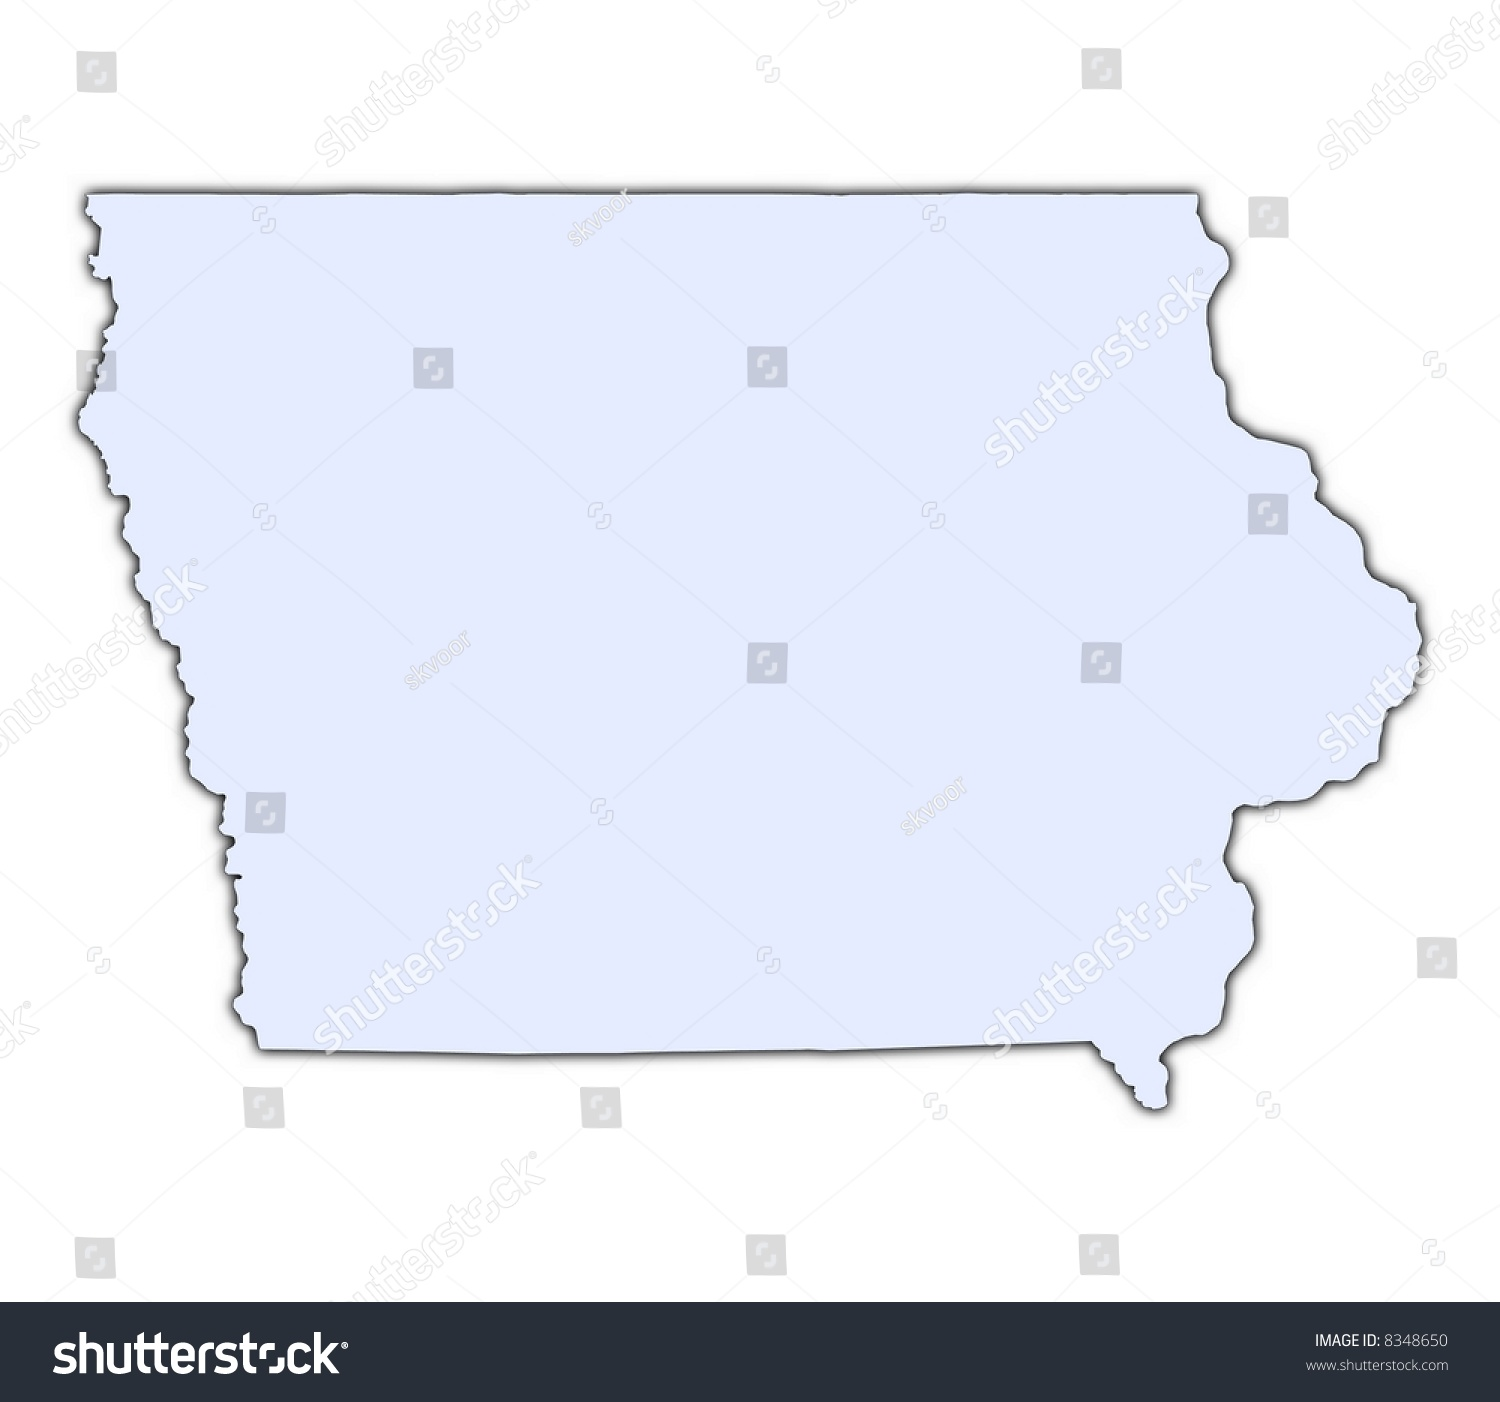 Reference Map Of Iowa USA Nations Online Project Map Usa Iowa - Iowa usa map